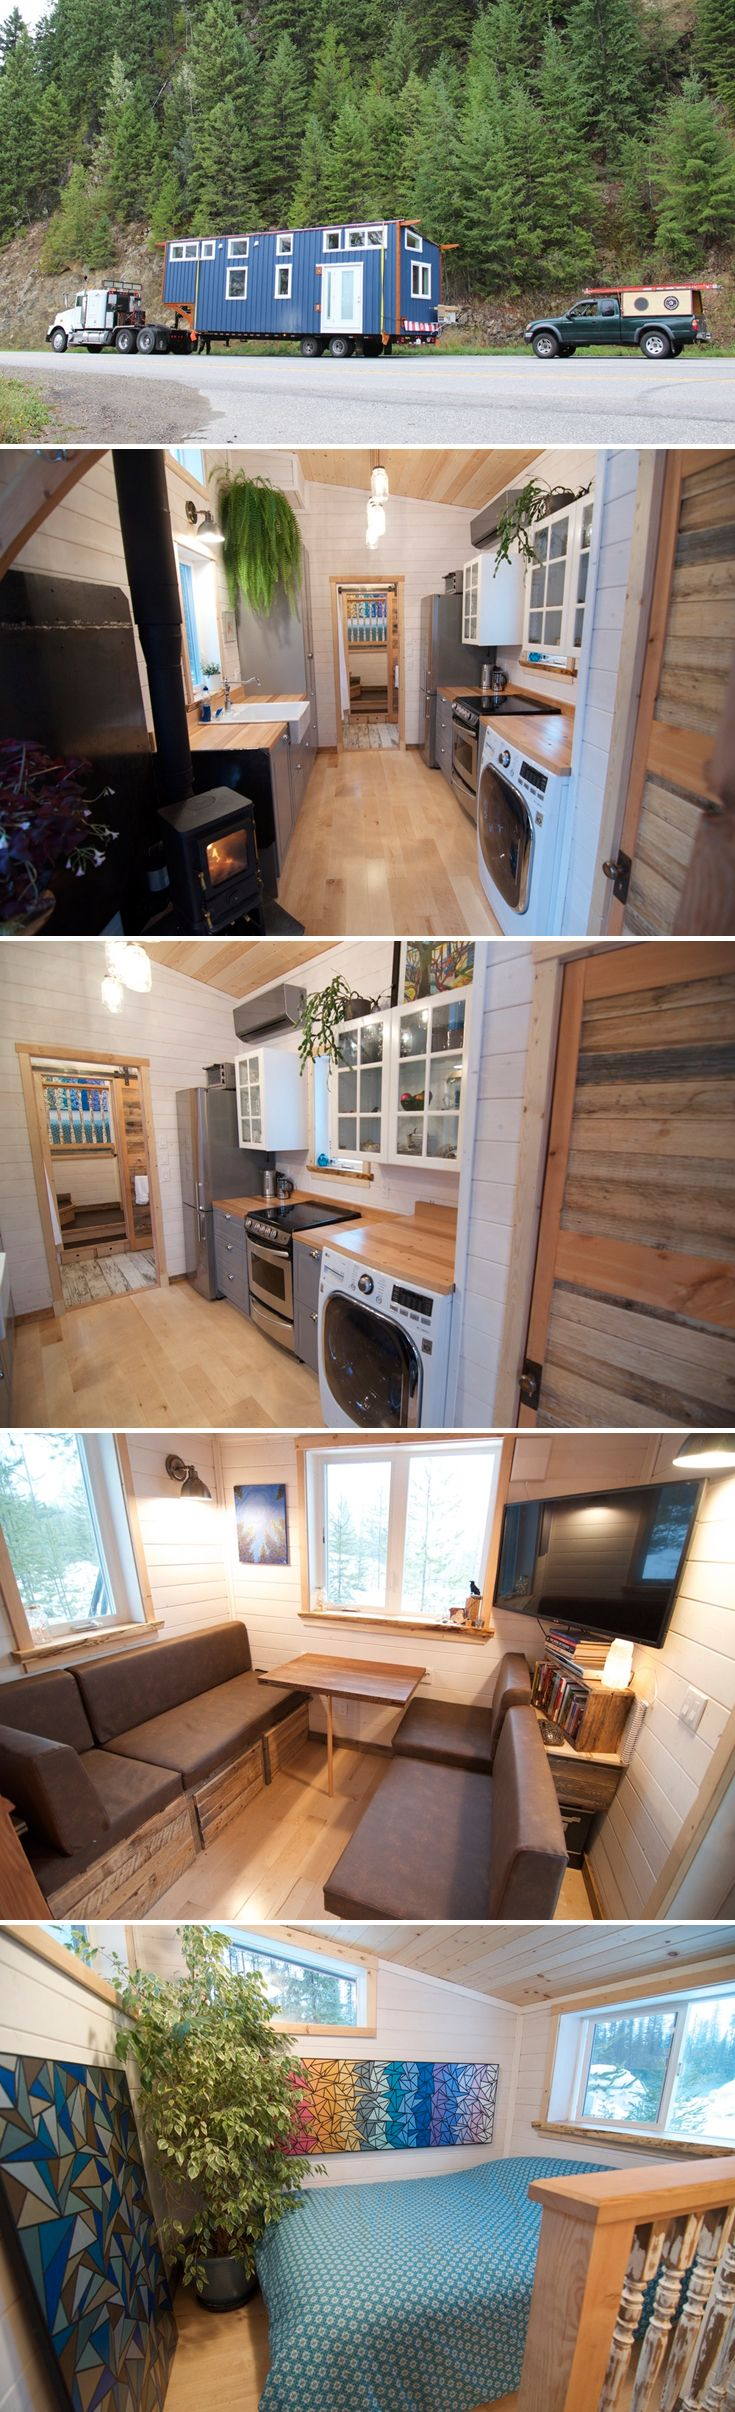 The Winter Wonderland is a customized off-grid V House built by Nelson Tiny Houses. This is their largest V House to date, measuring 380-square-feet.